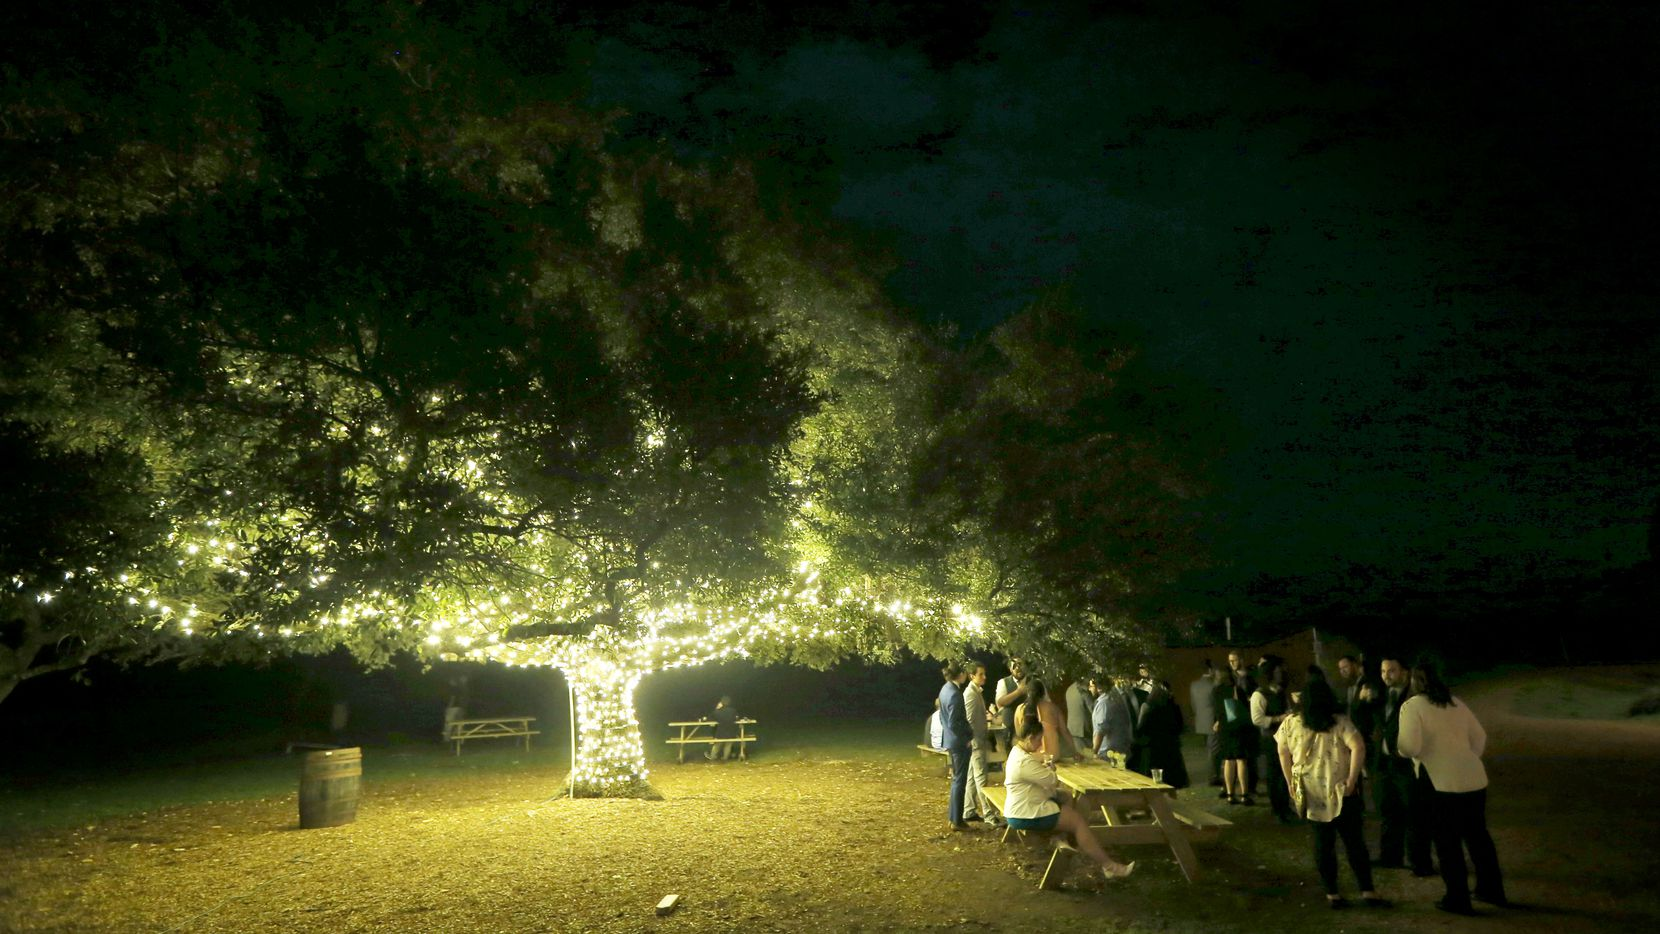 People spend time under one of the oak trees at  a brewer in Dripping Springs, Texas  on Saturday, February 24, 2018.